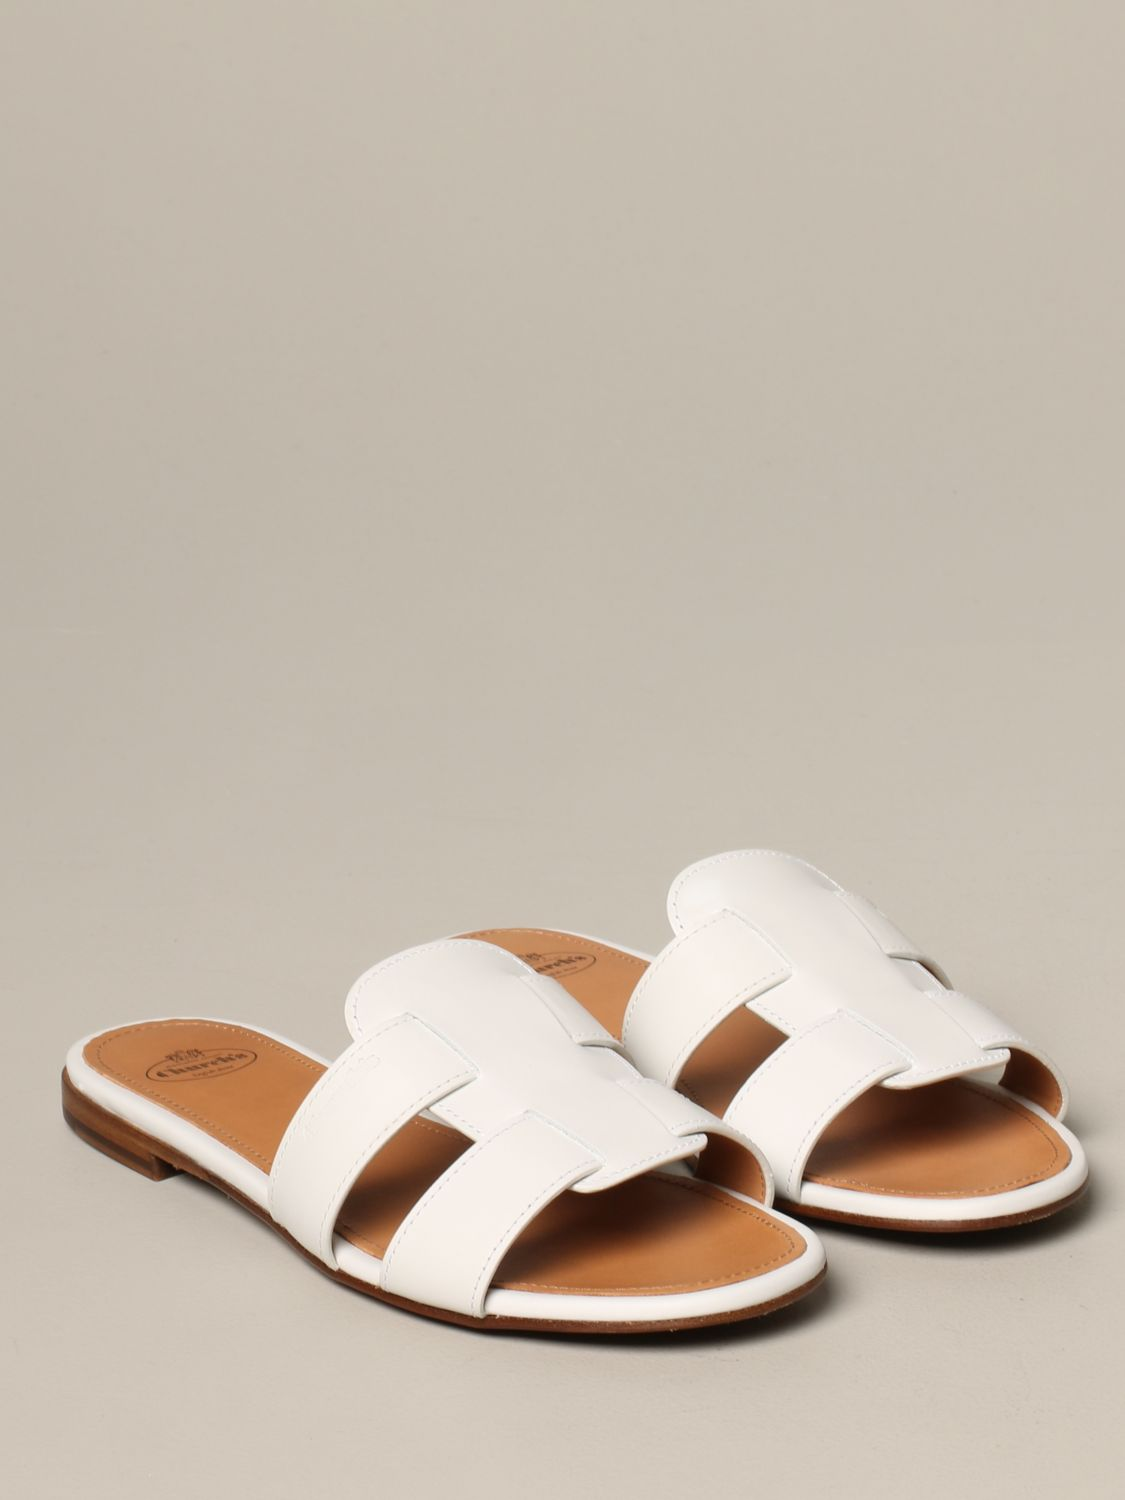 Flat sandals Church's: Shoes women Church's white 2